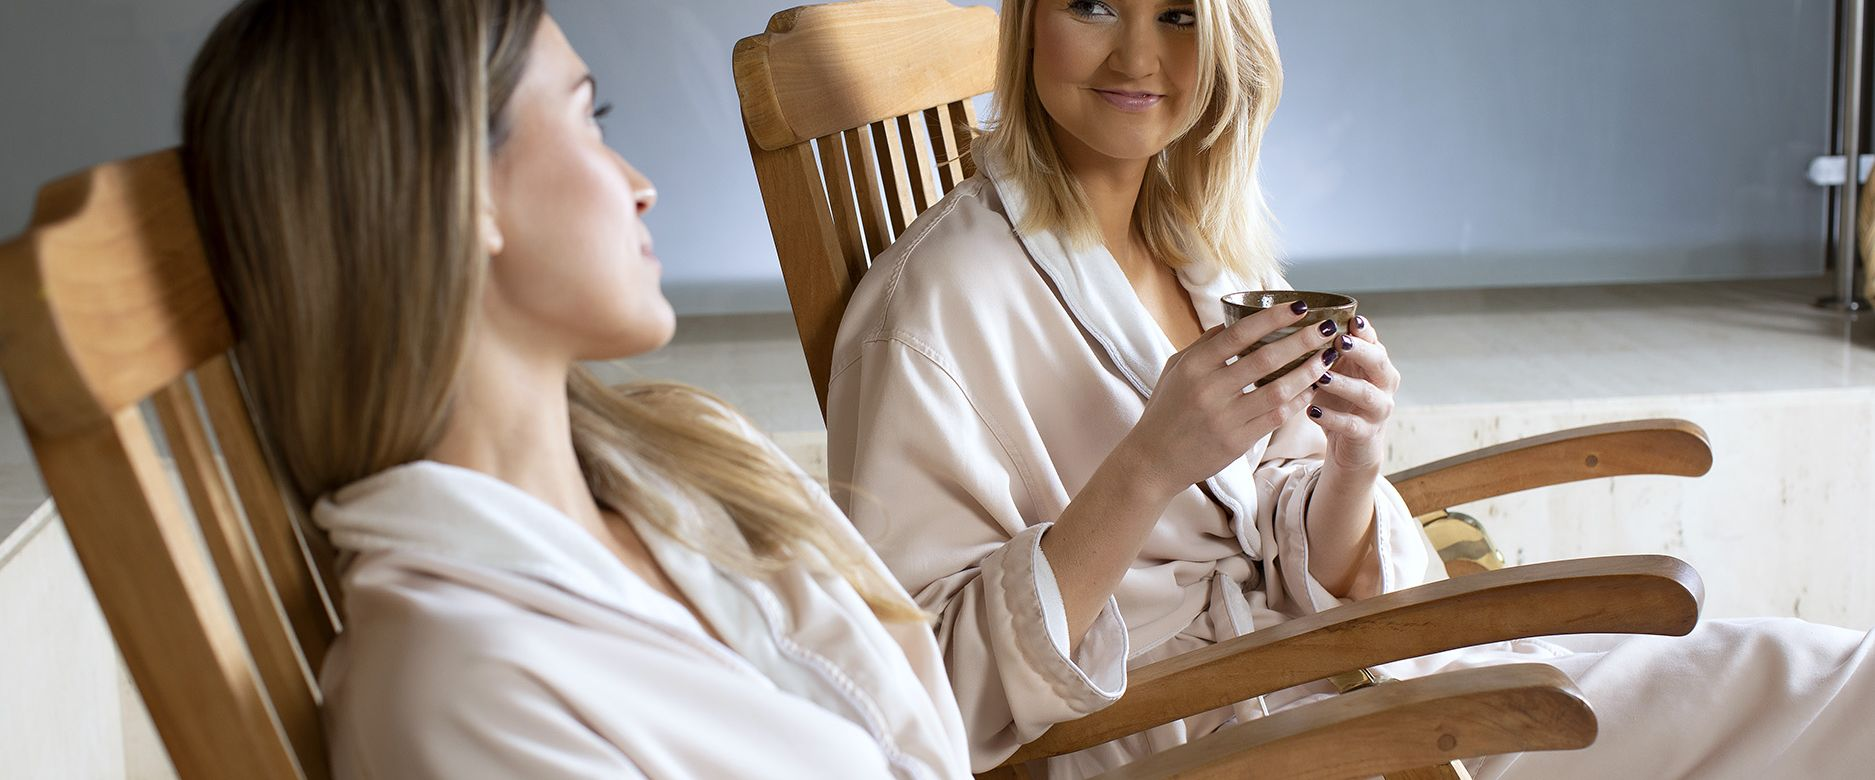 Two ladies chat and relax in wooden spa chairs